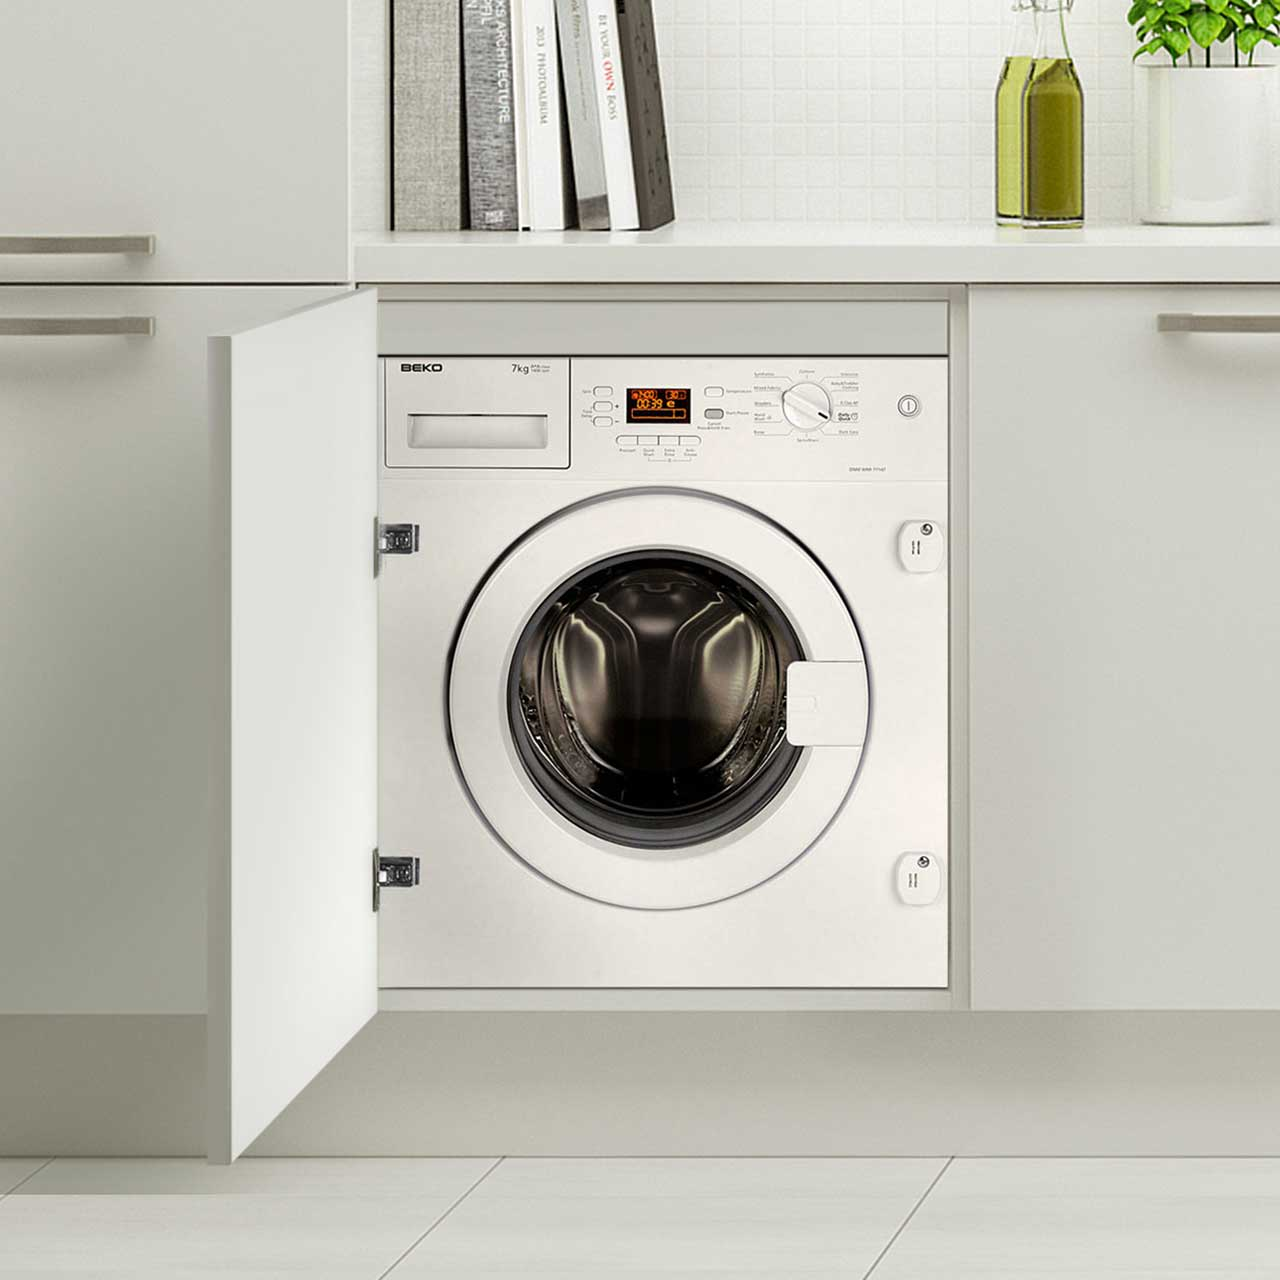 Beko WMI71641 Integrated 7Kg Washing Machine with 1600 rpm